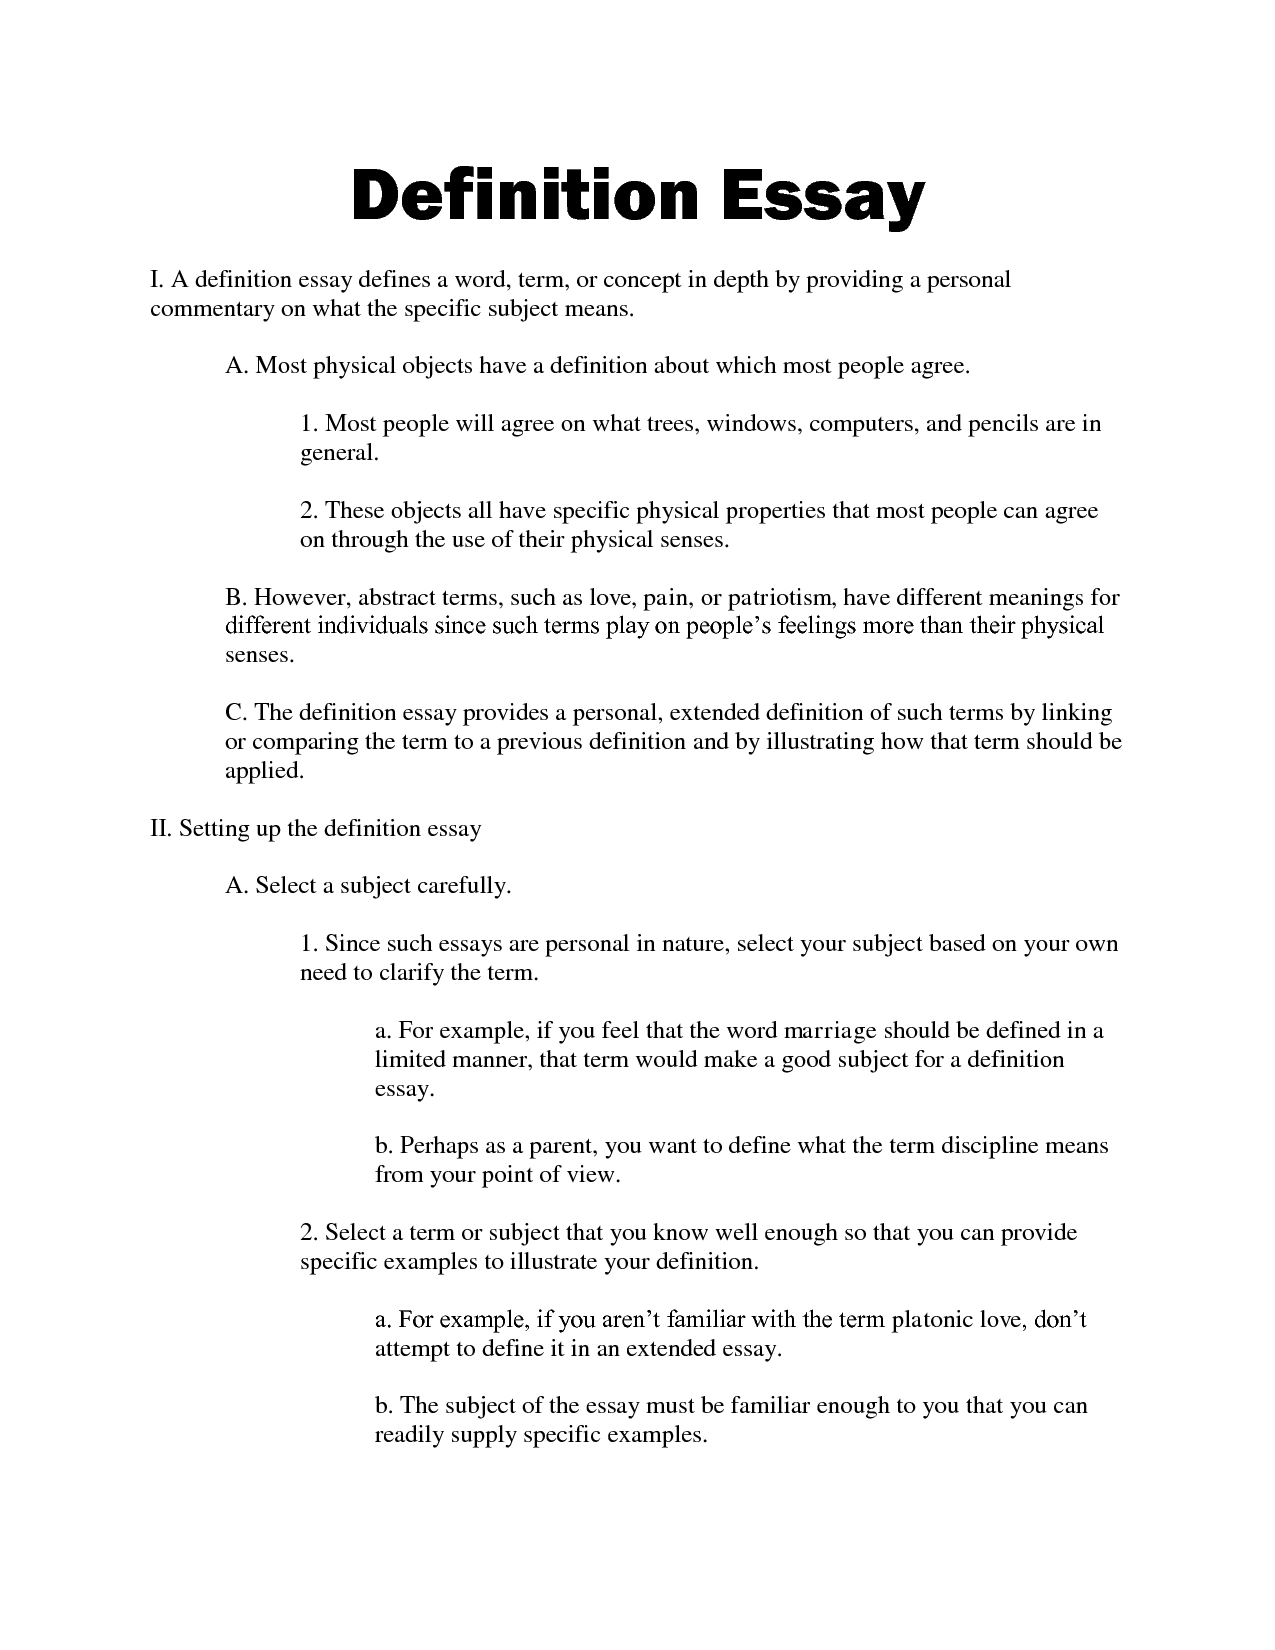 006 Essay On Success Best Ideas Of Mentary Topics Targer Golden Dragon Great For Definition Picture Sensational A Successful Person Is Someone Who Rich In Life Man's Final Goal Secret Full